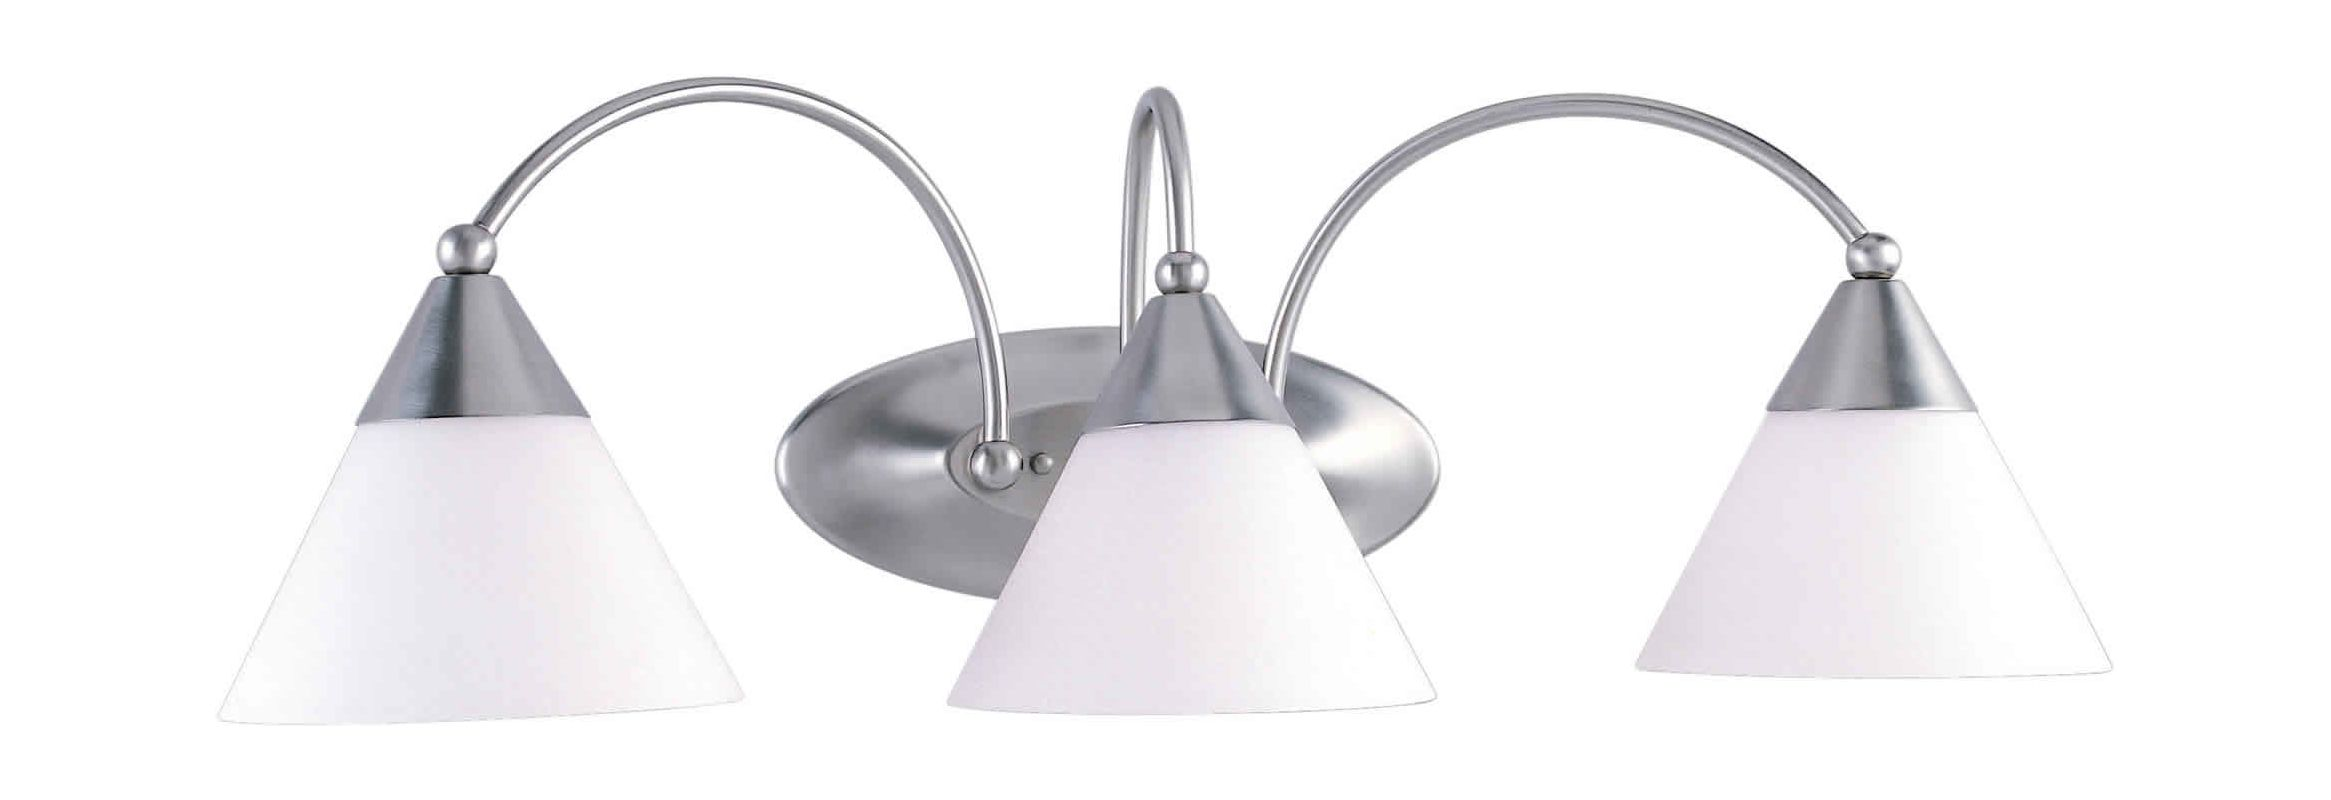 "Forte Lighting 5167-03 3 Light 25.5"" Wide Bathroom Fixture Brushed"